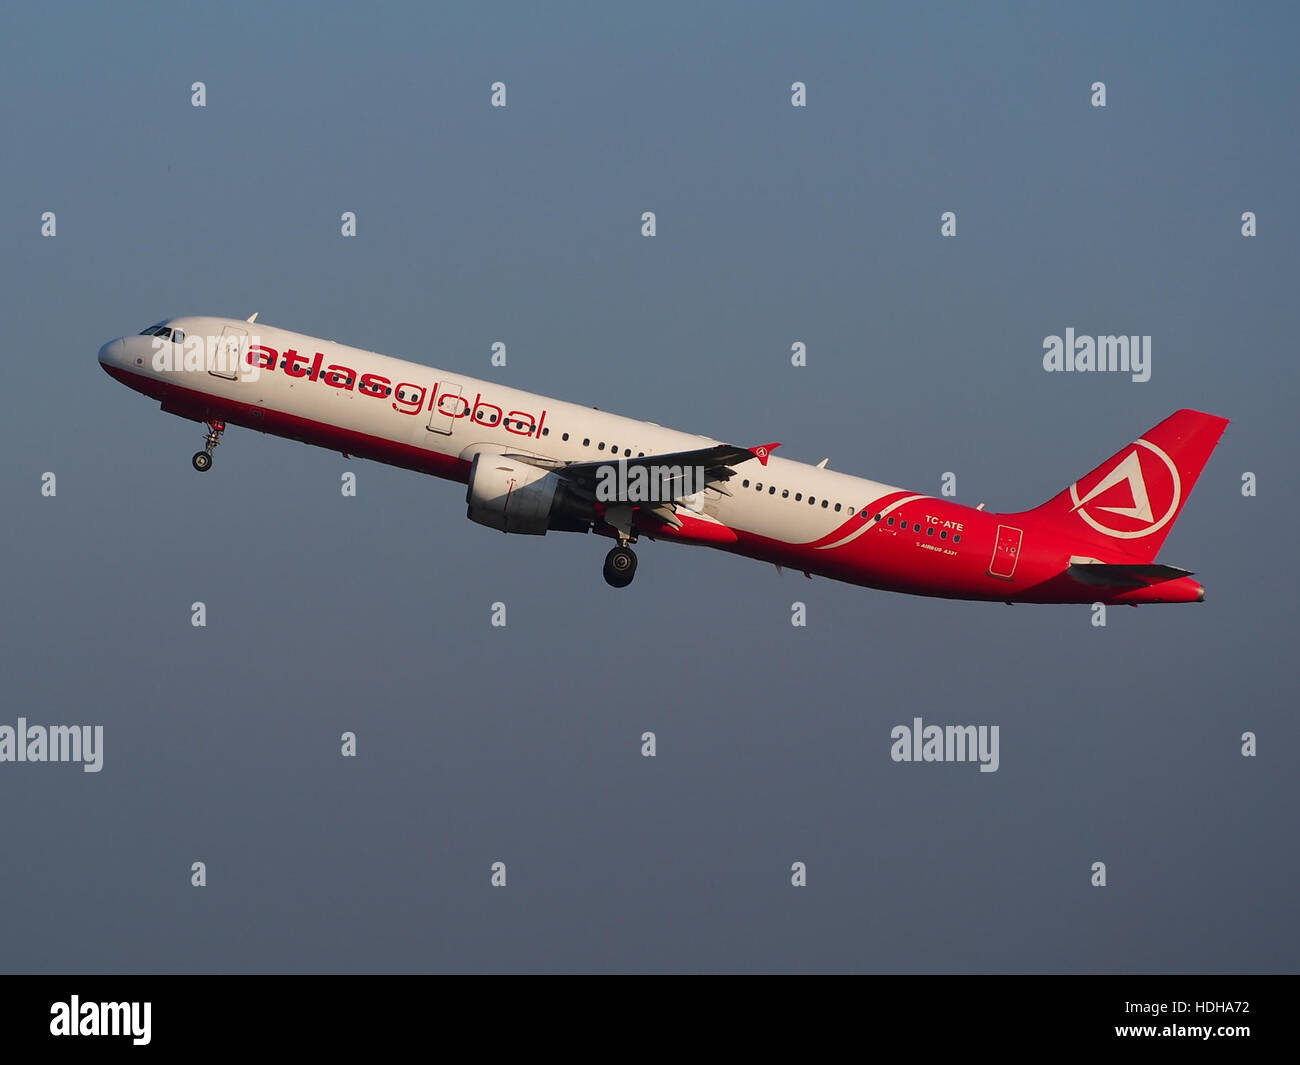 TC-ATE, Airbus A321-211, Atlasjet takeoff from Schihol runway 36C pic2 Stock Photo